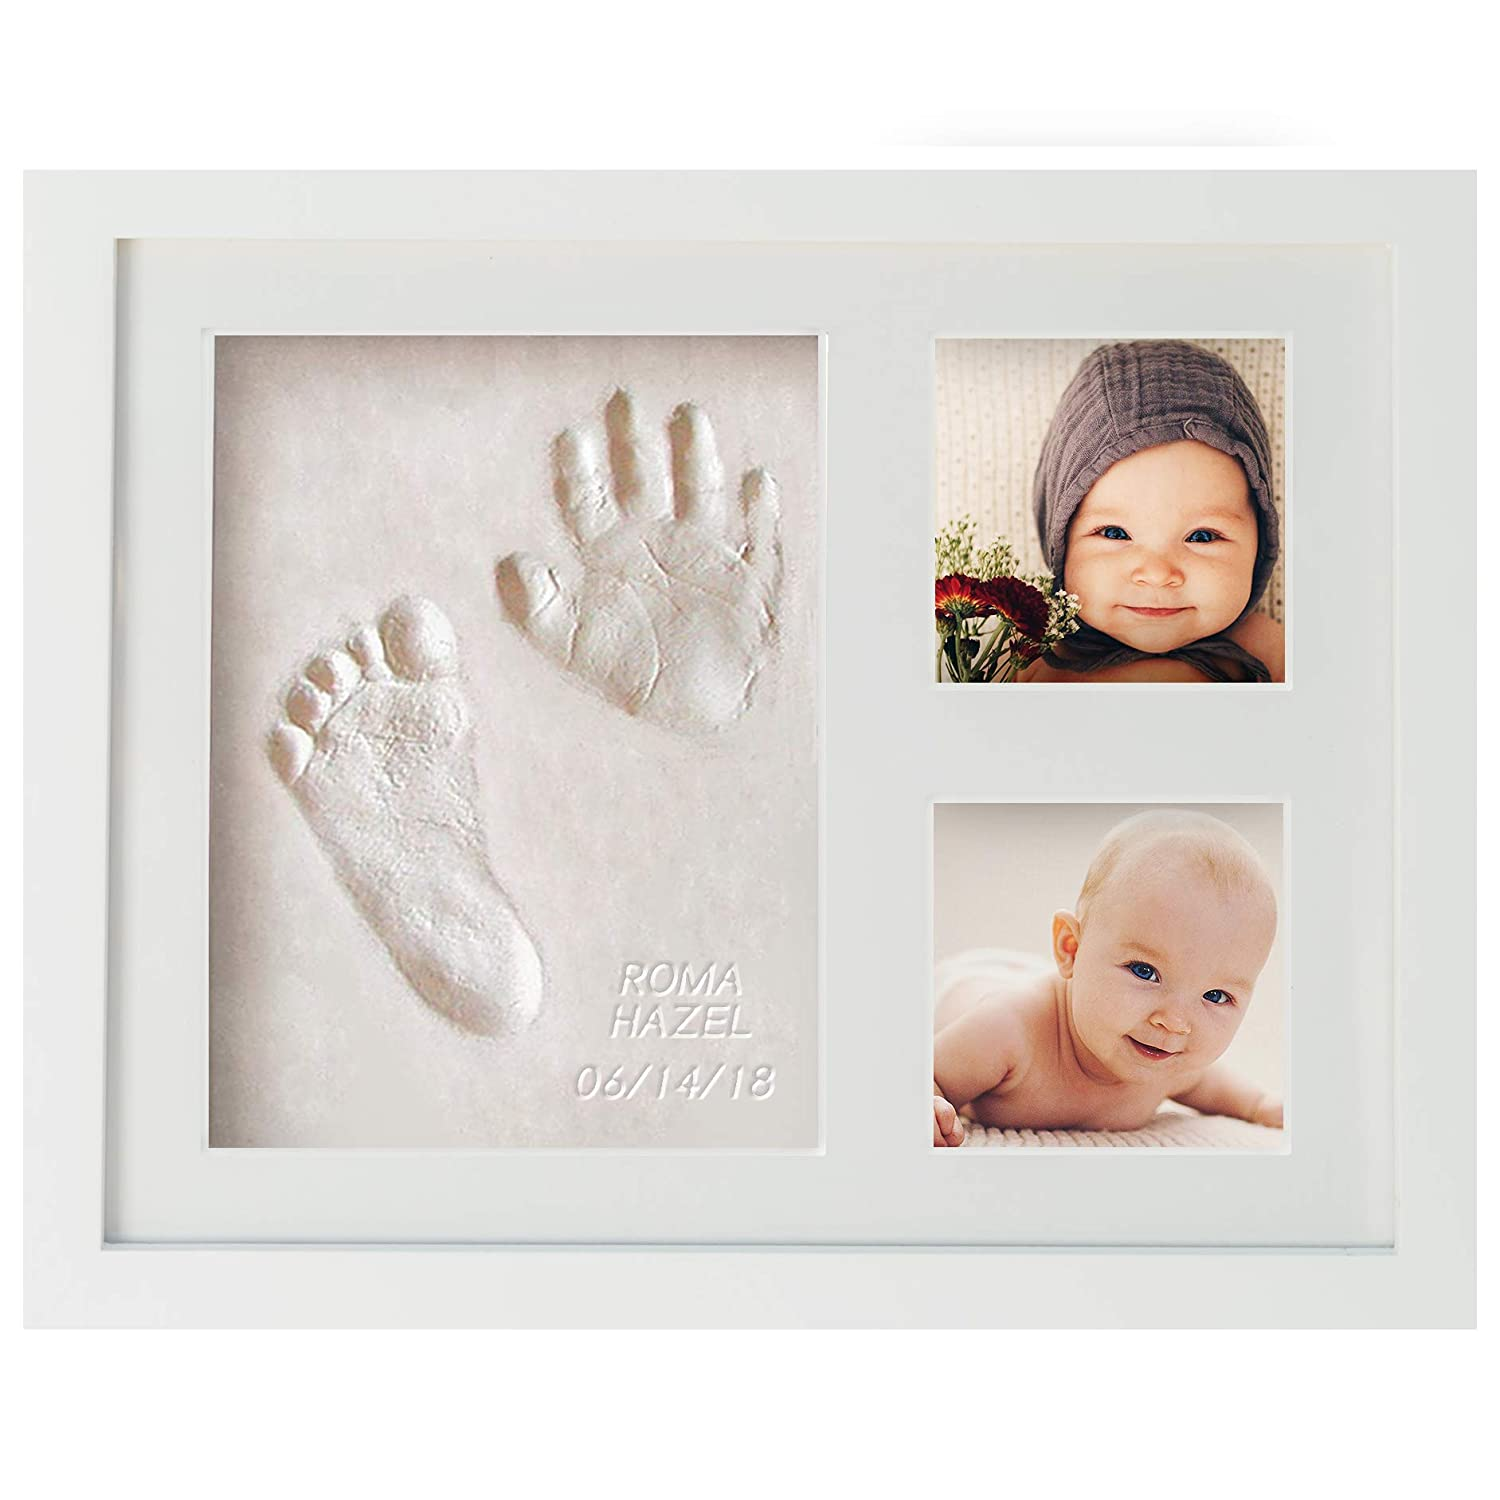 WavHello Baby Handprint & Footprint Frame Kit, Clay Casting & Photo Memory Keepsake Frame, Baby Registry Gift & Baby Shower Gift, Baby Boy Gift & Baby Girl Gift - No Mold - First Impressions